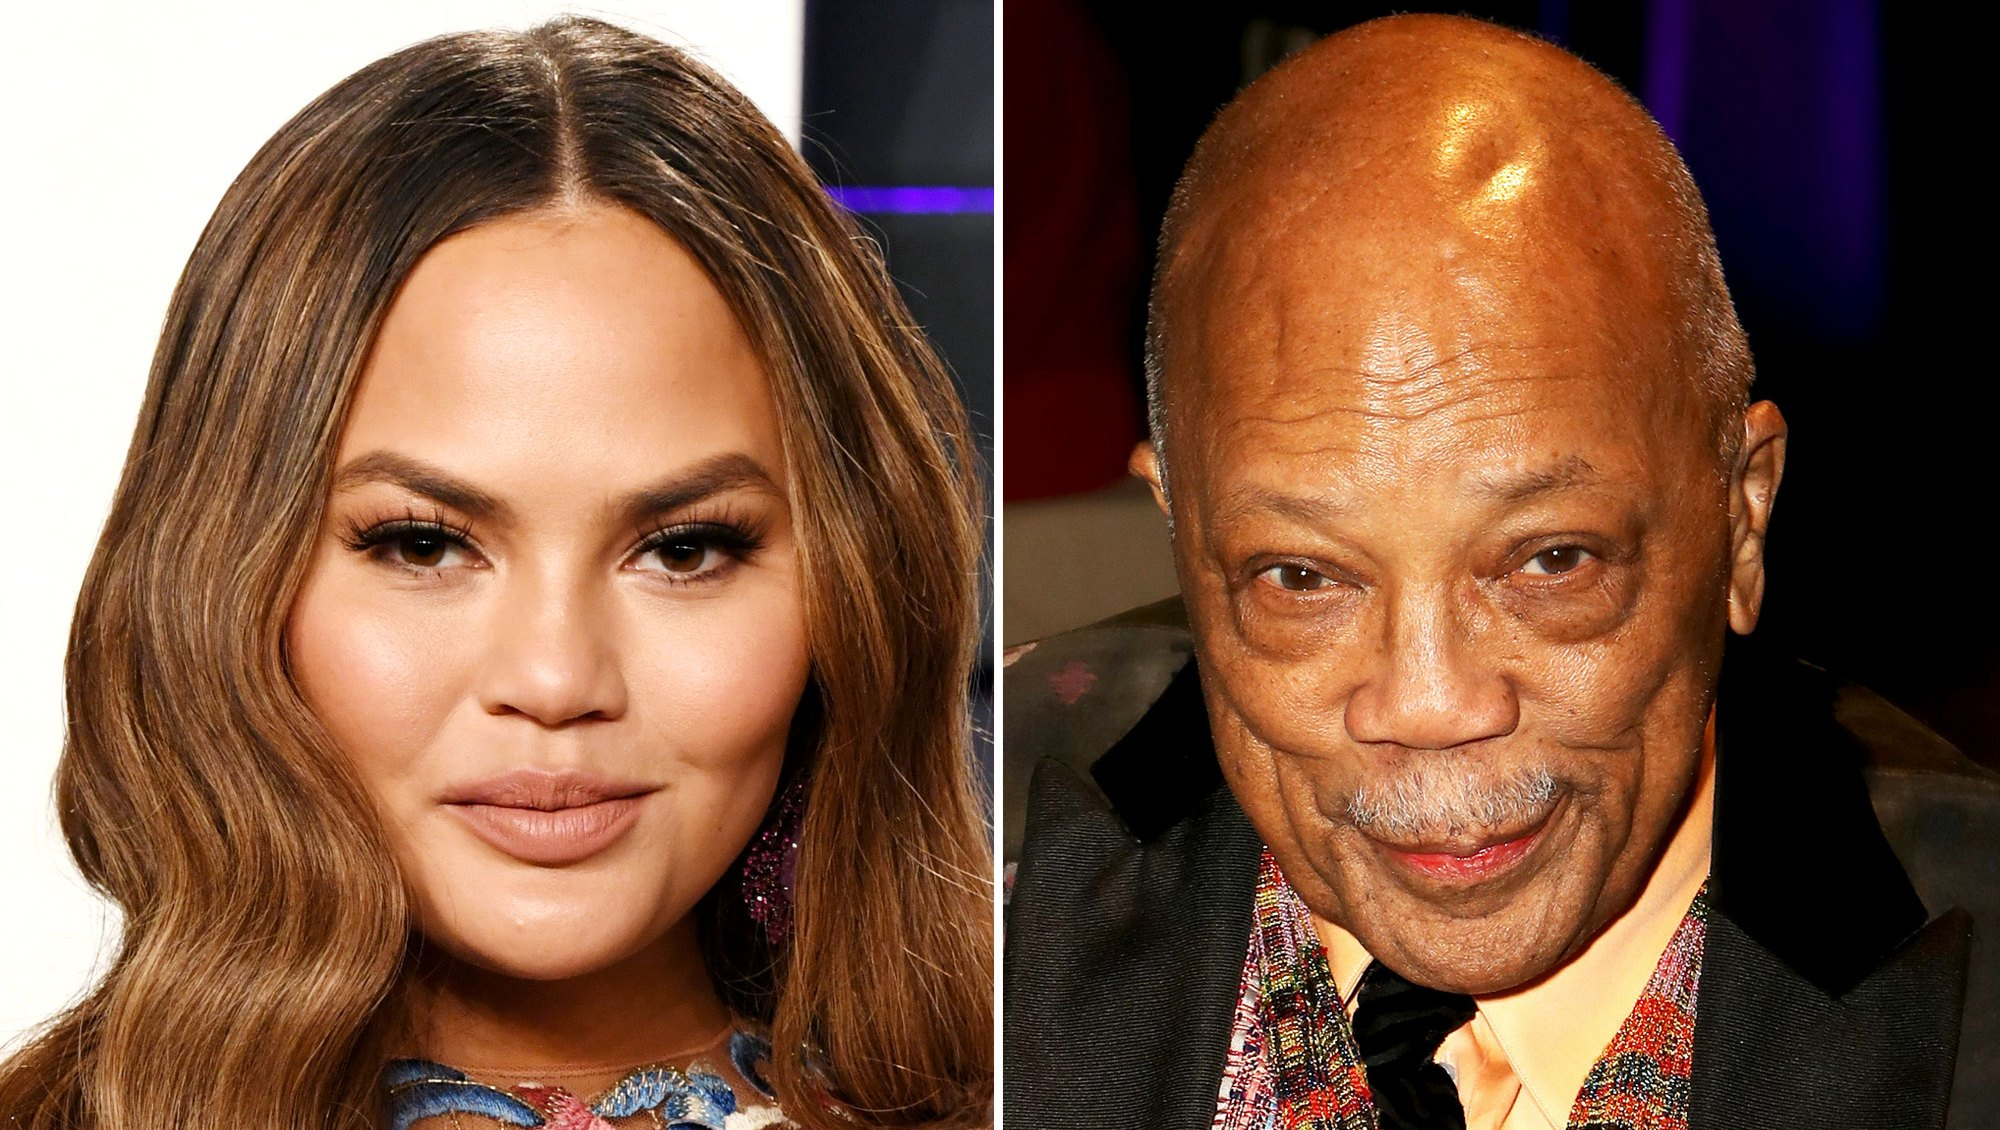 Chrissy Teigen 'Stole Some Shrimp' From Quincy Jones' Plate at Oscar Afterparty Chrissy Teigen Quincy Jones